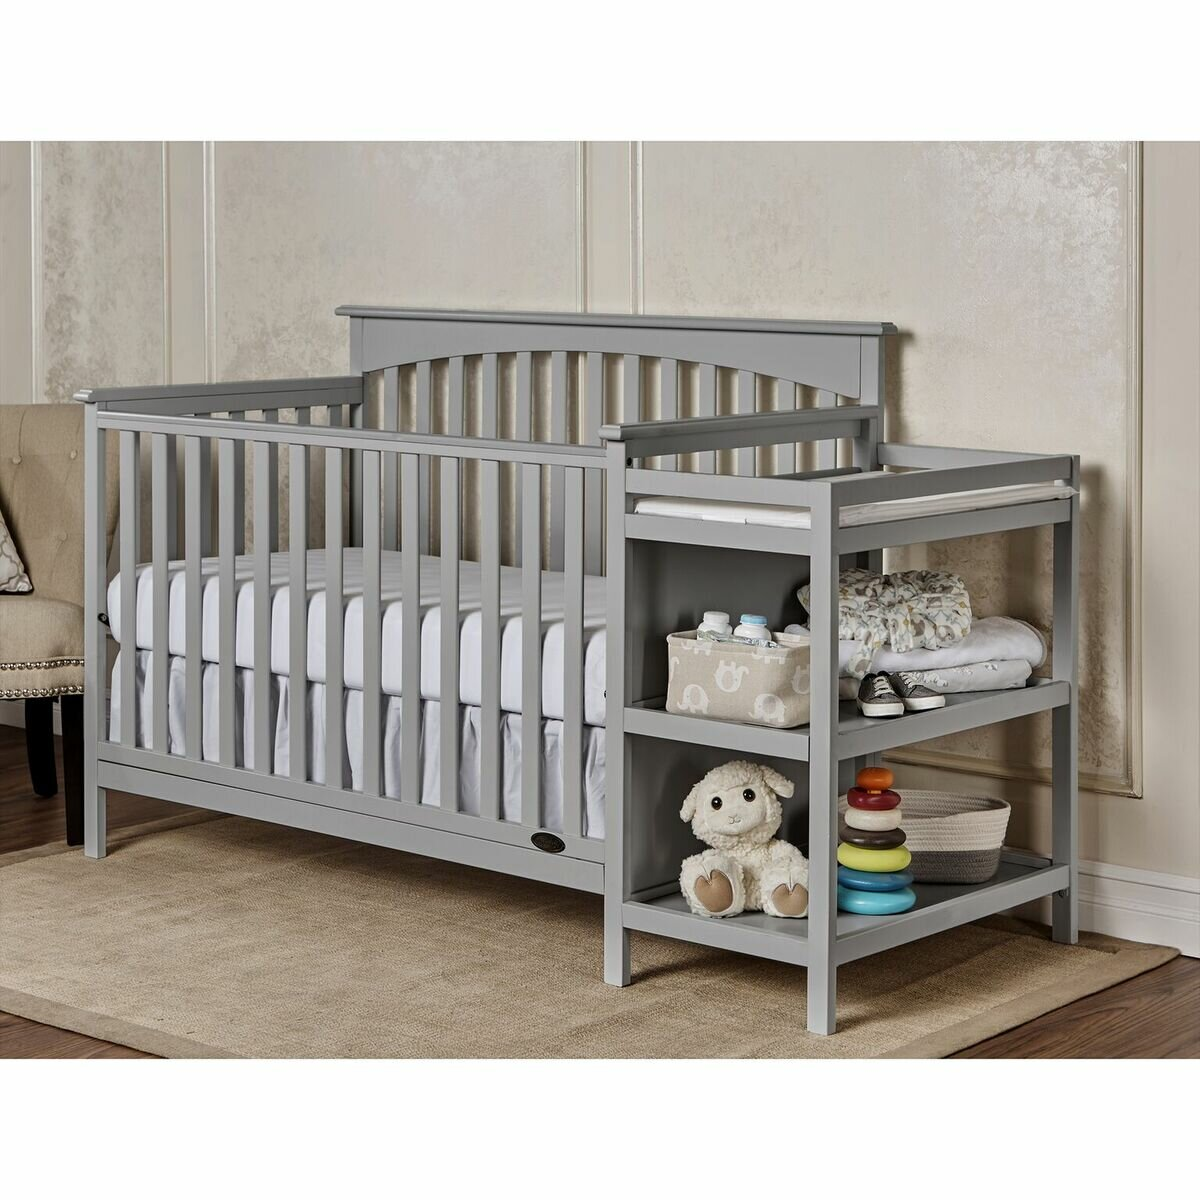 Dream On Me Chloe 5 In 1 Convertible Crib And Changer Combo Reviews Wayfair